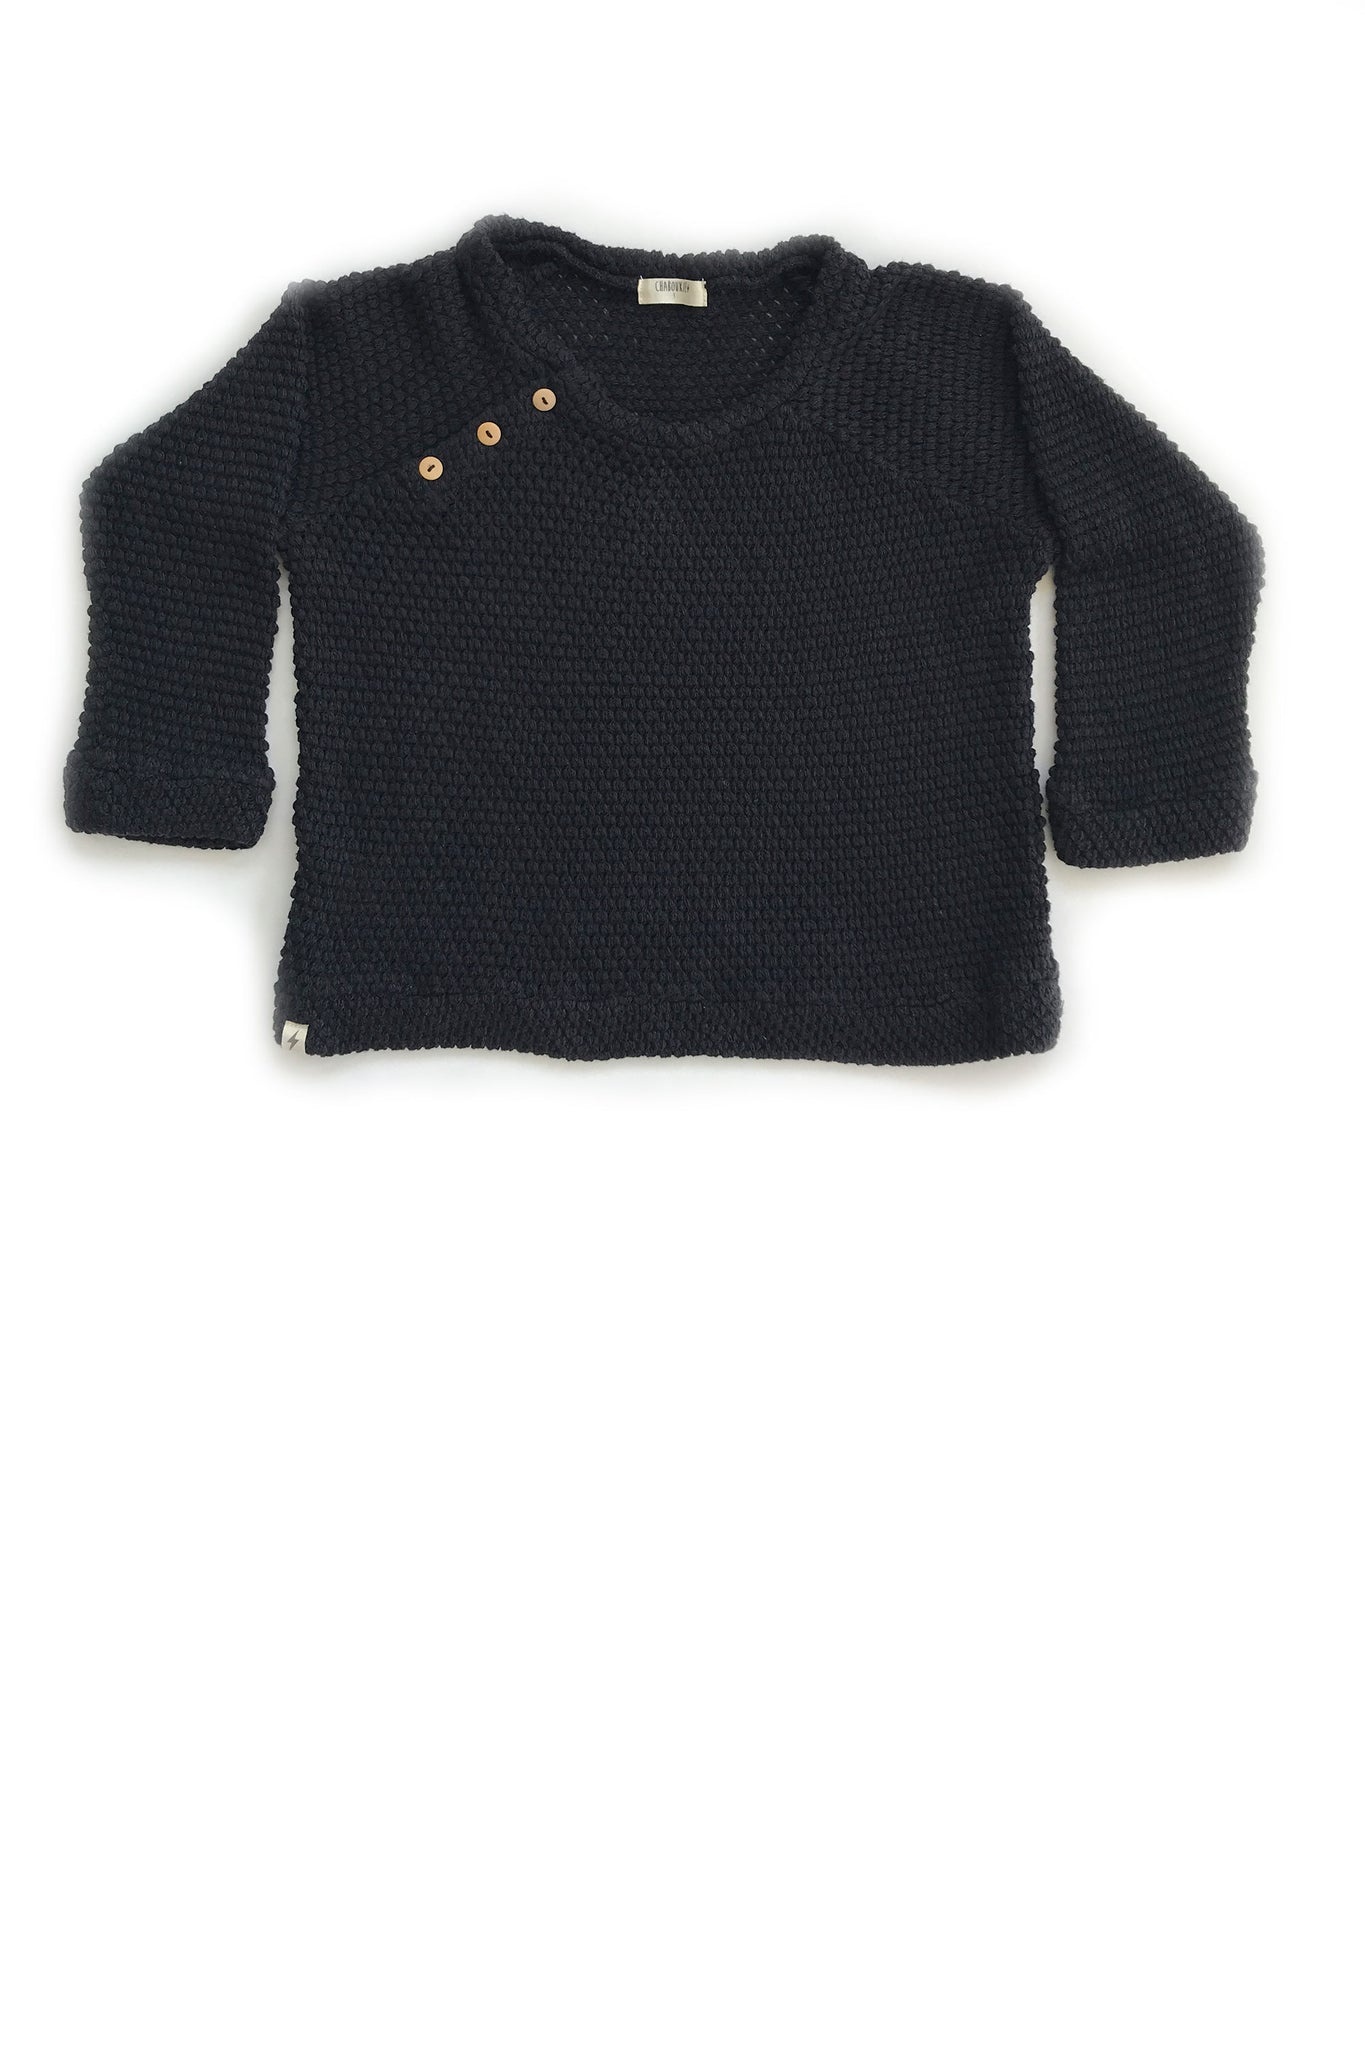 Button Sweater in Black